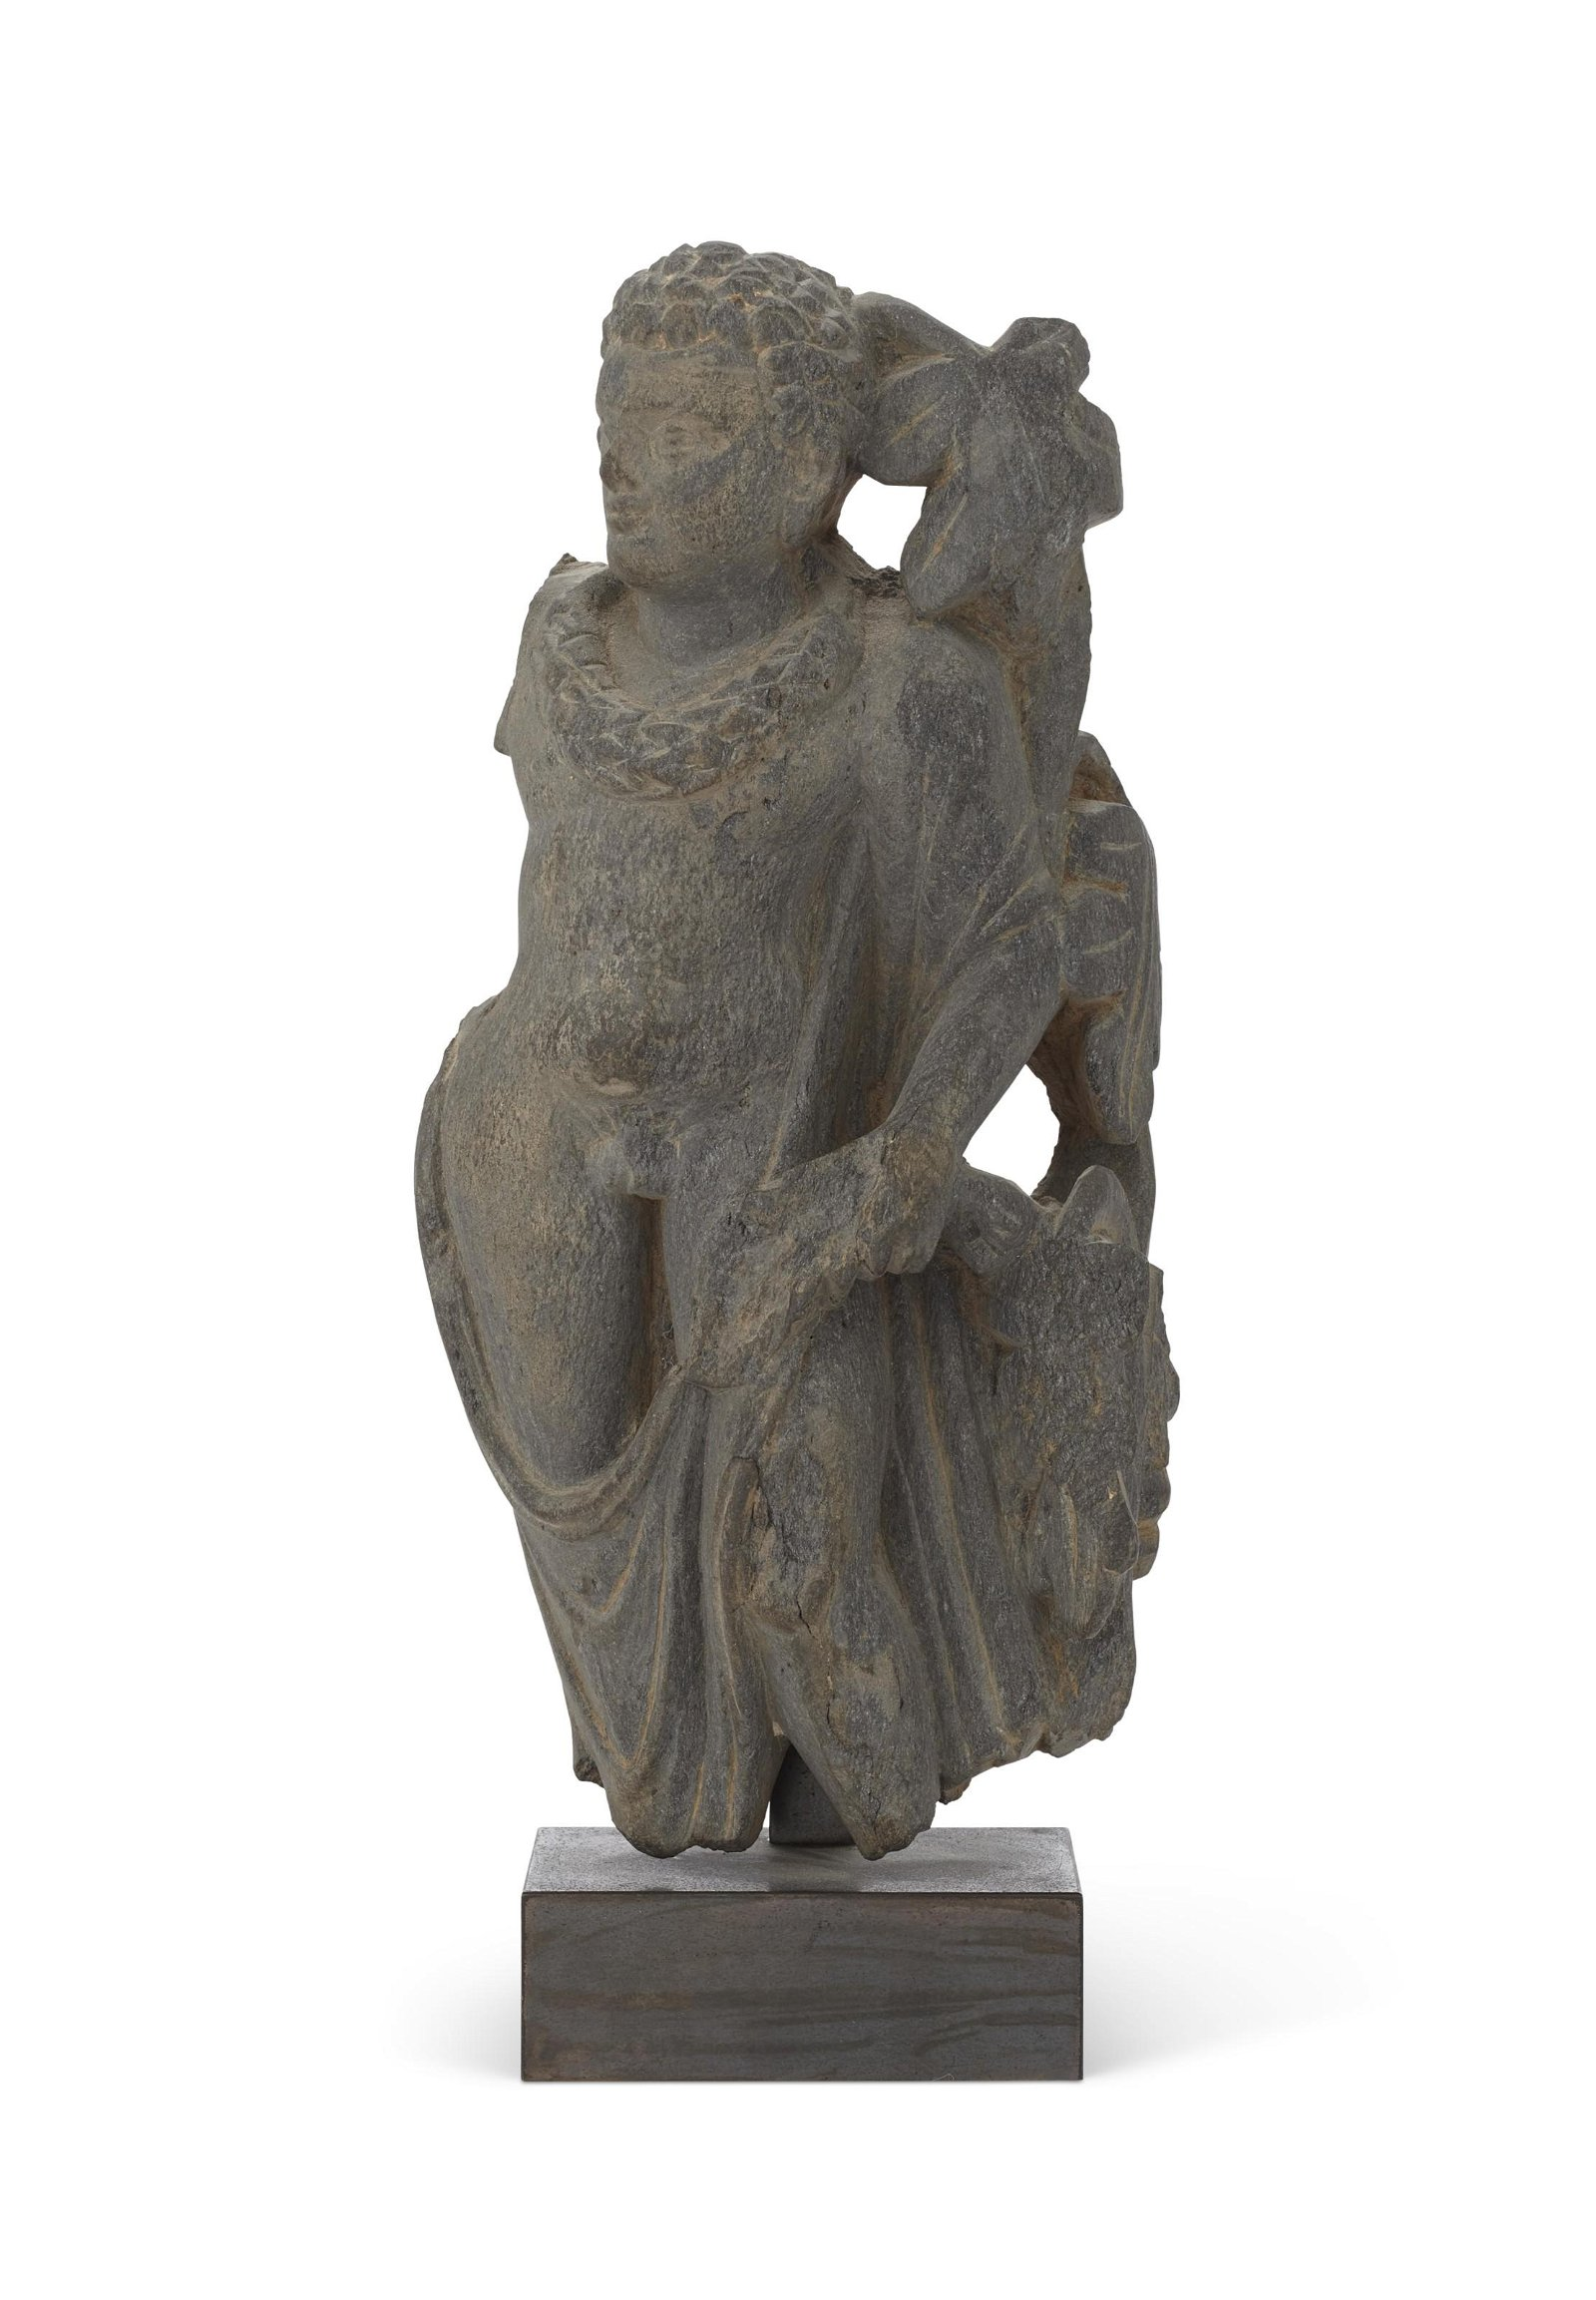 A GREY SCHIST FIGURE OF A MALE, POSSIBLY APOLLO